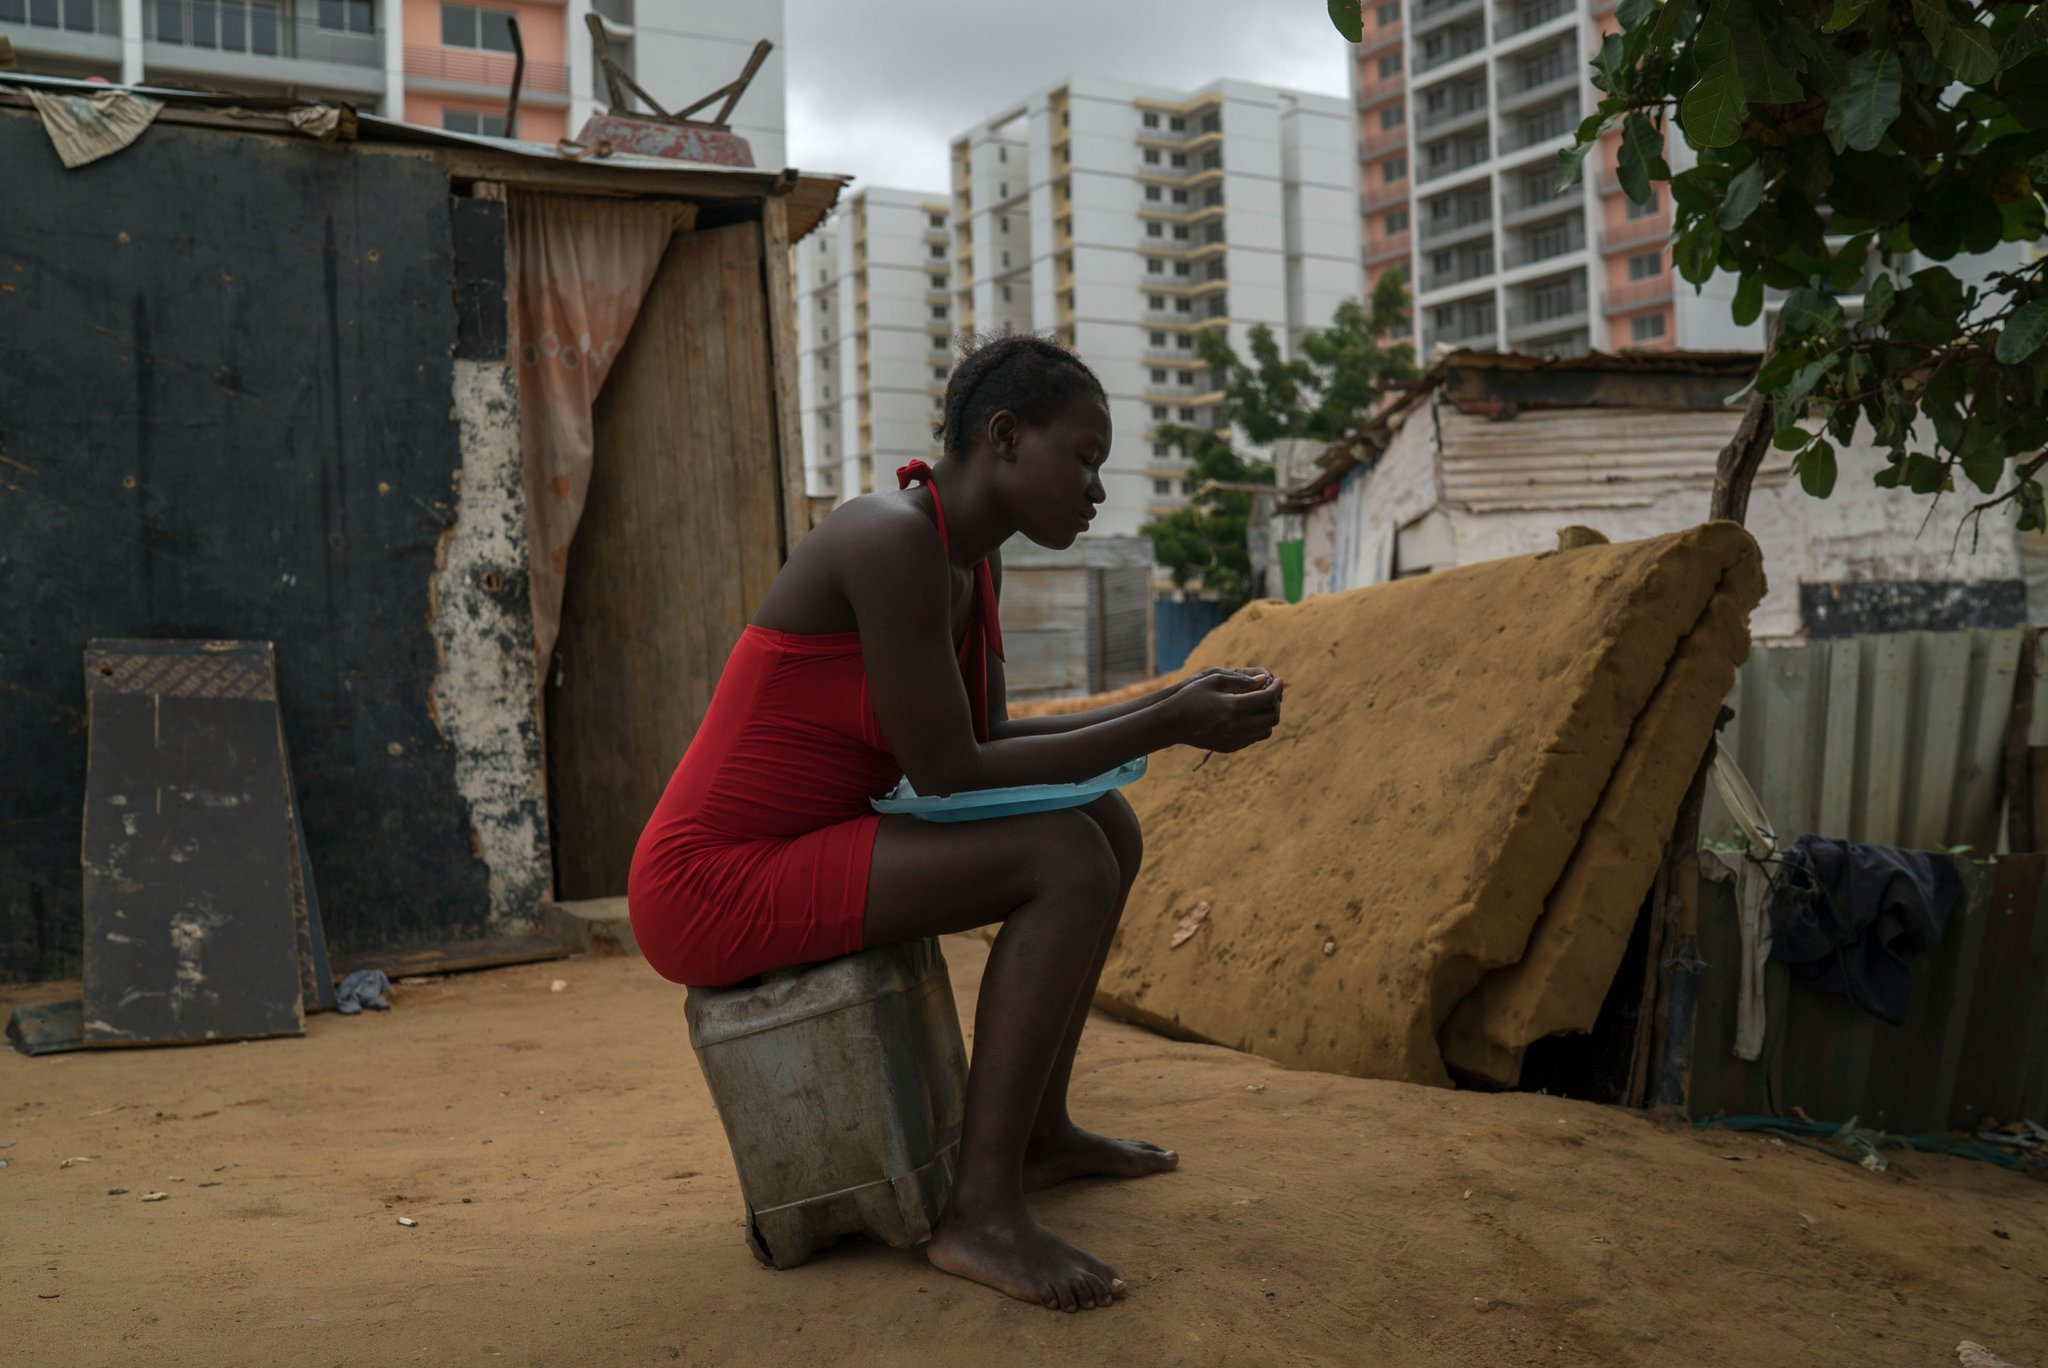 Angola's Story of Politically Exposed Persons and Debt Traps